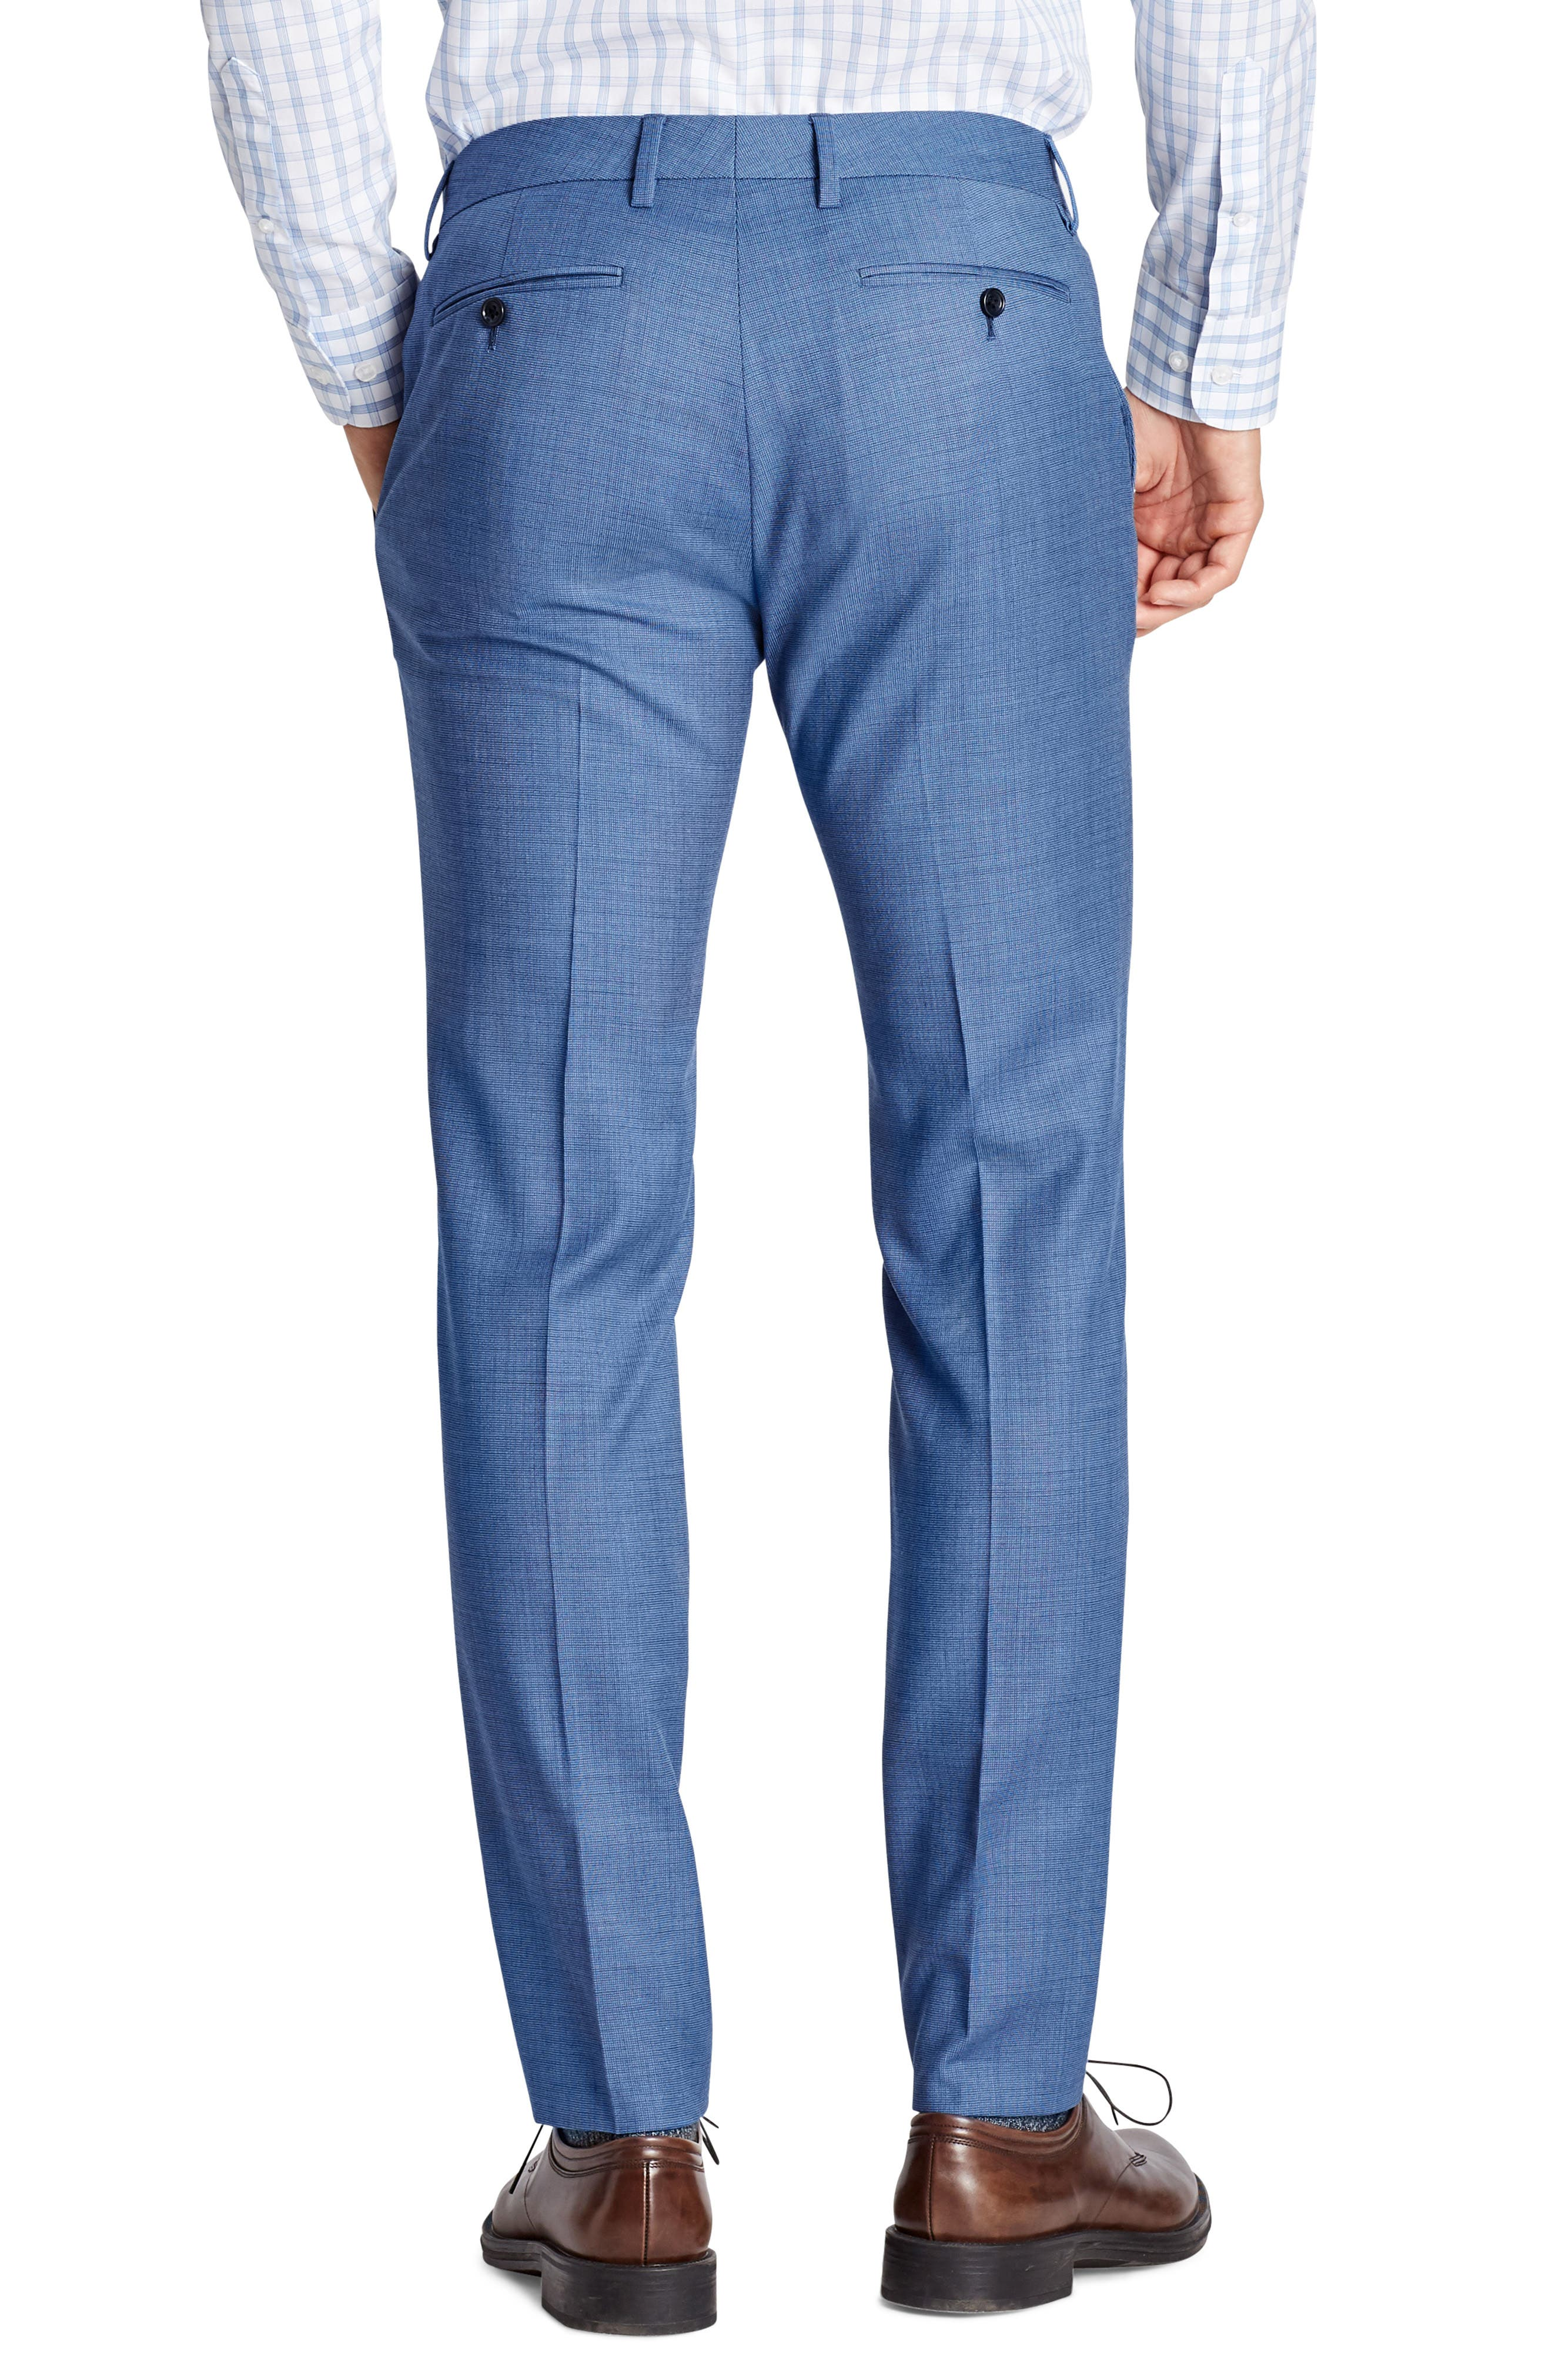 Jetsetter Flat Front Solid Stretch Wool Trousers,                             Alternate thumbnail 2, color,                             Brighter Blue